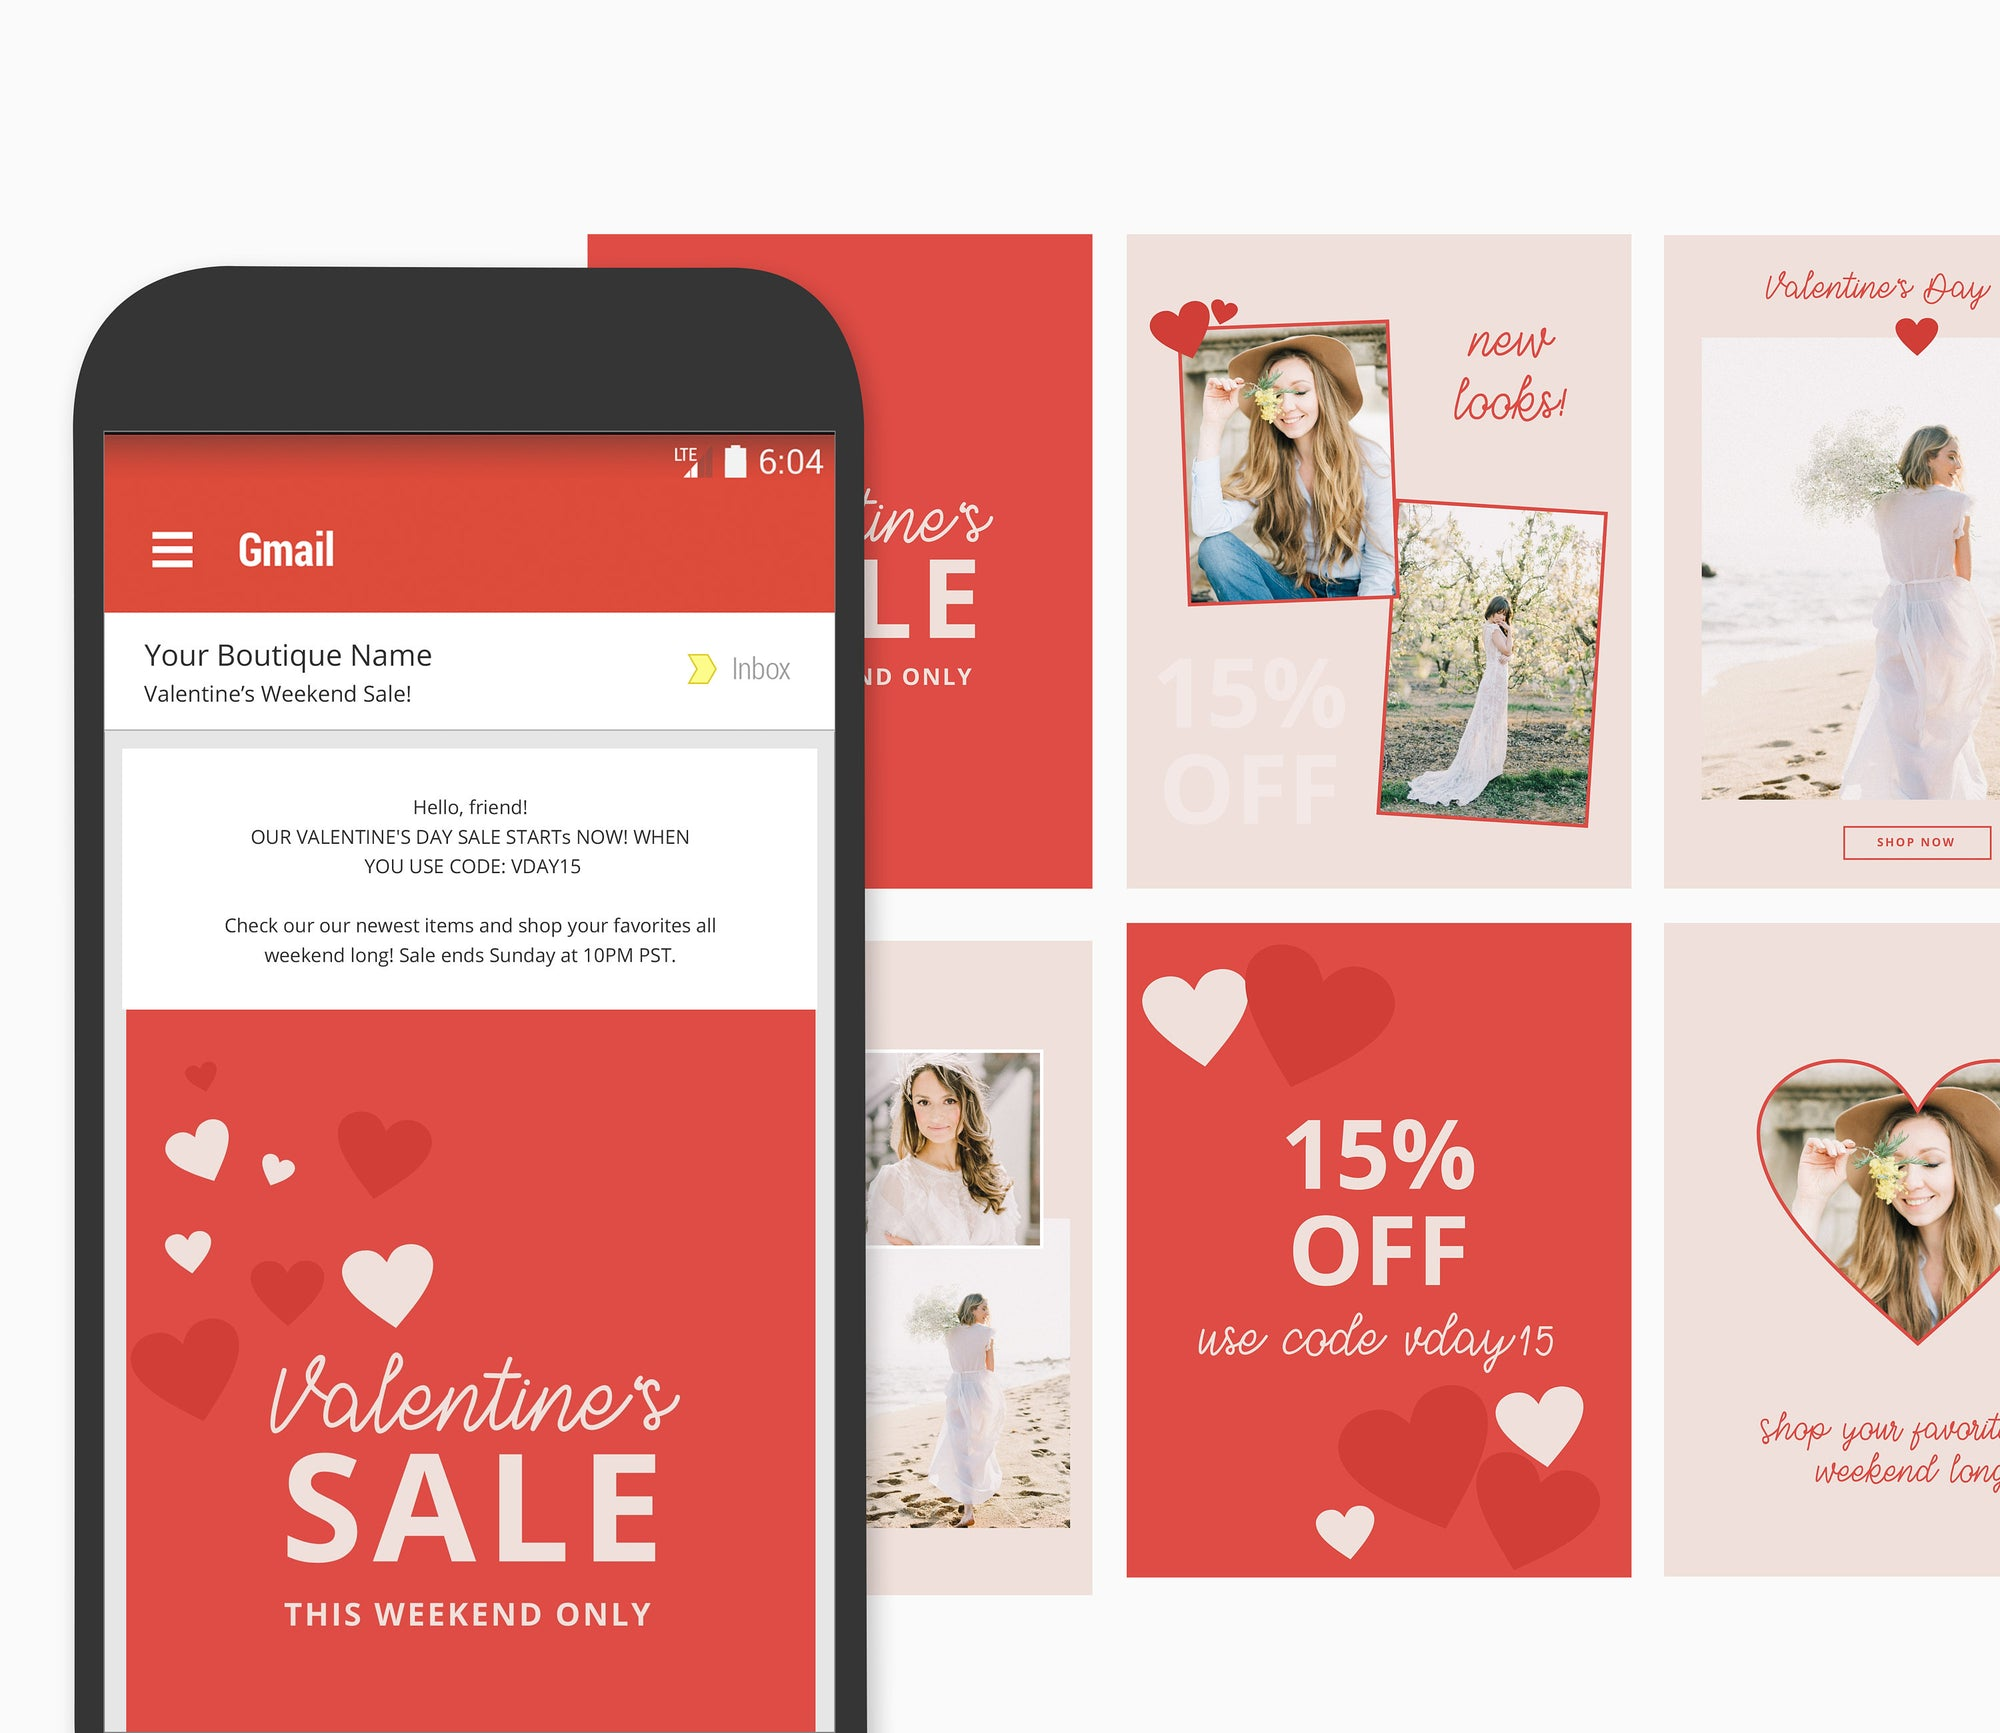 Valentine's Day email marketing set, email marketing templates, boutique email marketing, valentine's day marketing set, email templates